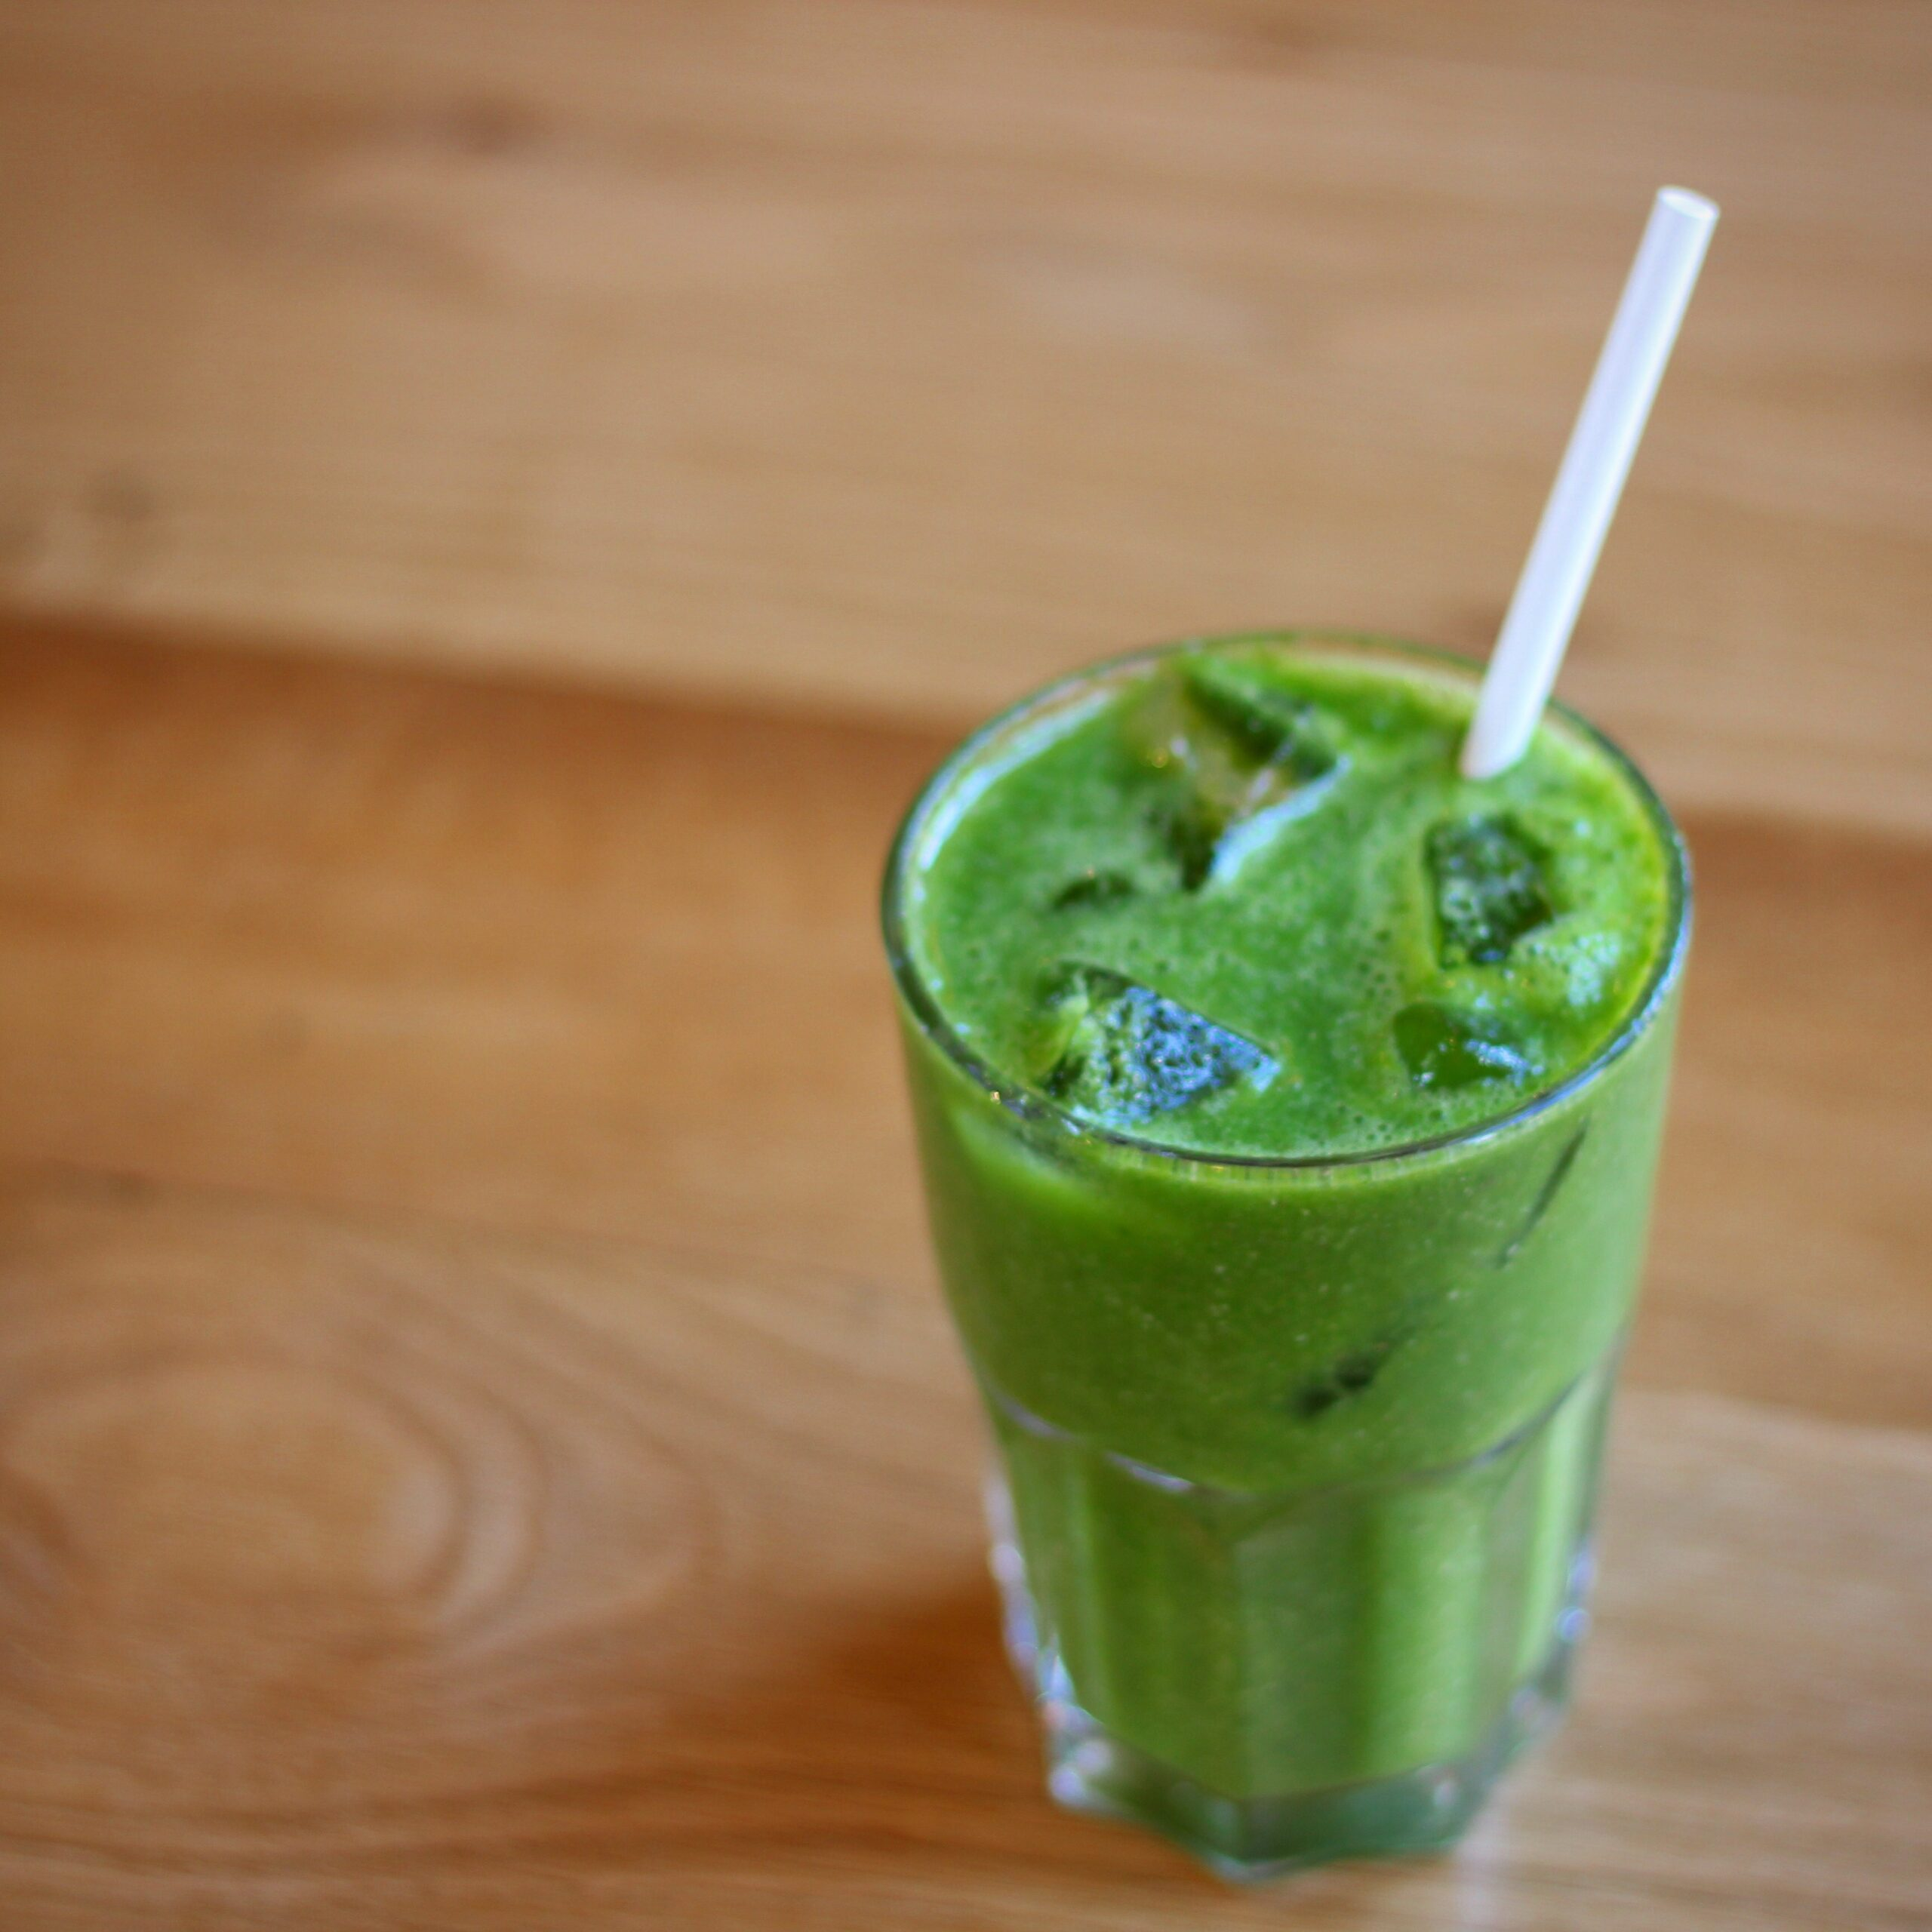 glass-of-green-smoothie-with-ice-and-straw-from-Boston Tea Party